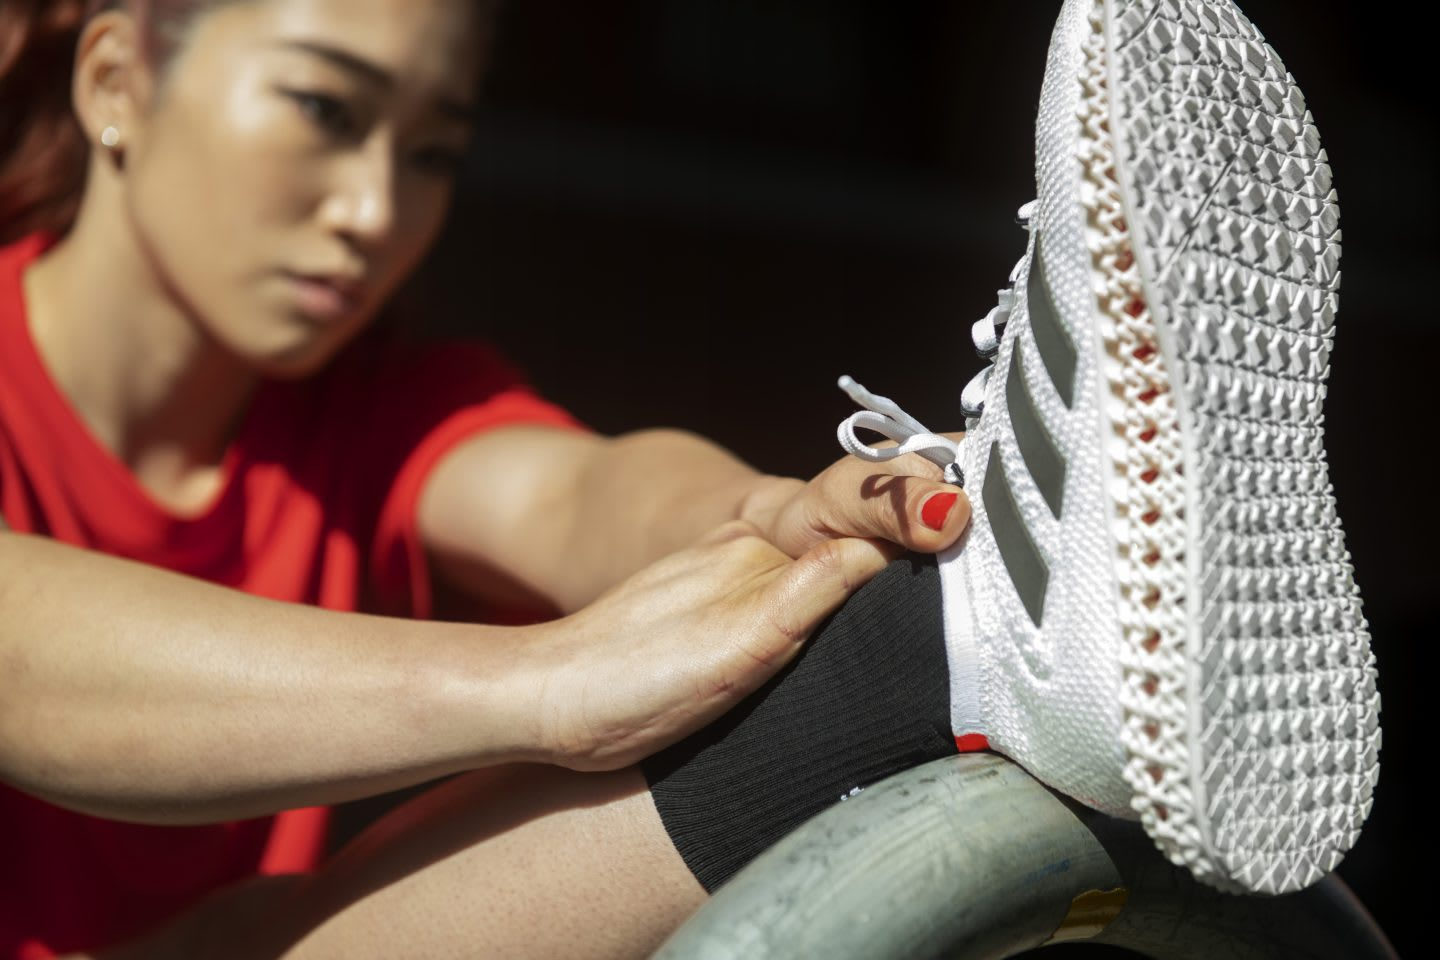 Asian woman stretching out leg before sports session, adidas, Olympics, athlete, sports, sport